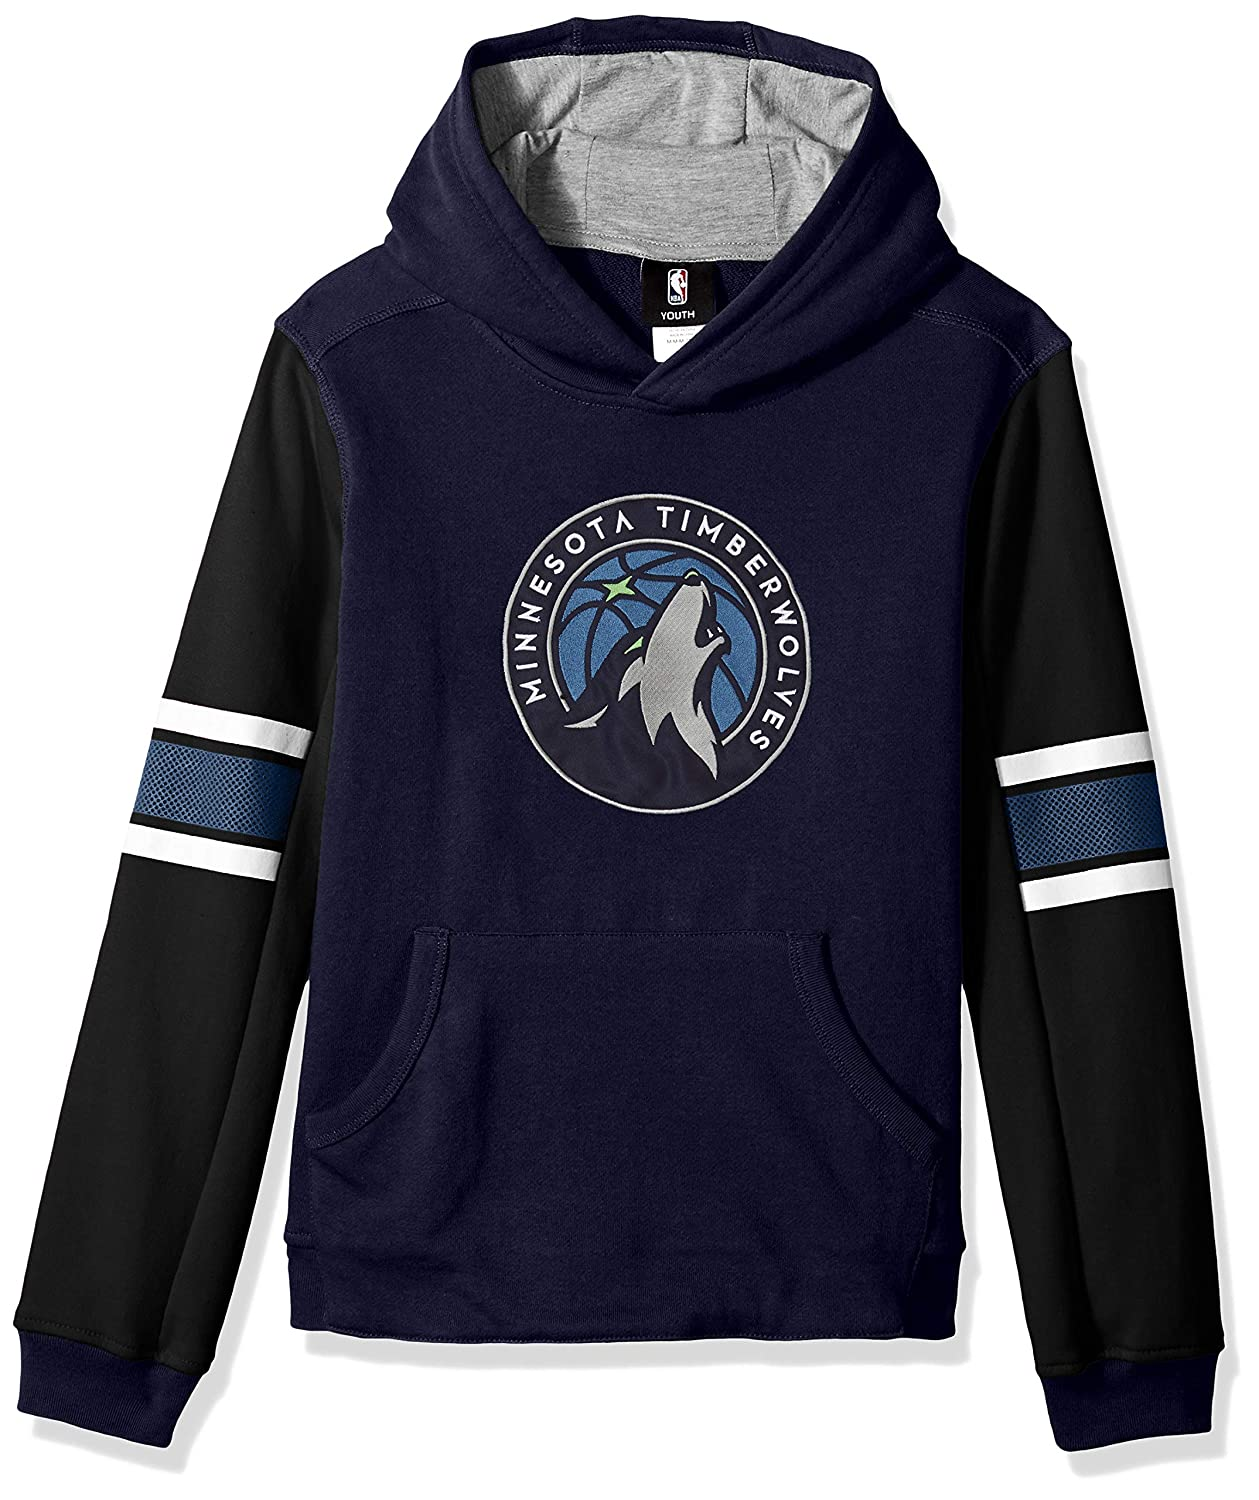 Youth Medium 10-12 Outerstuff NBA NBA Youth Boys Minnesota Timberwolves Man in Motion Color Blocked Pullover Hoodie Dark Navy